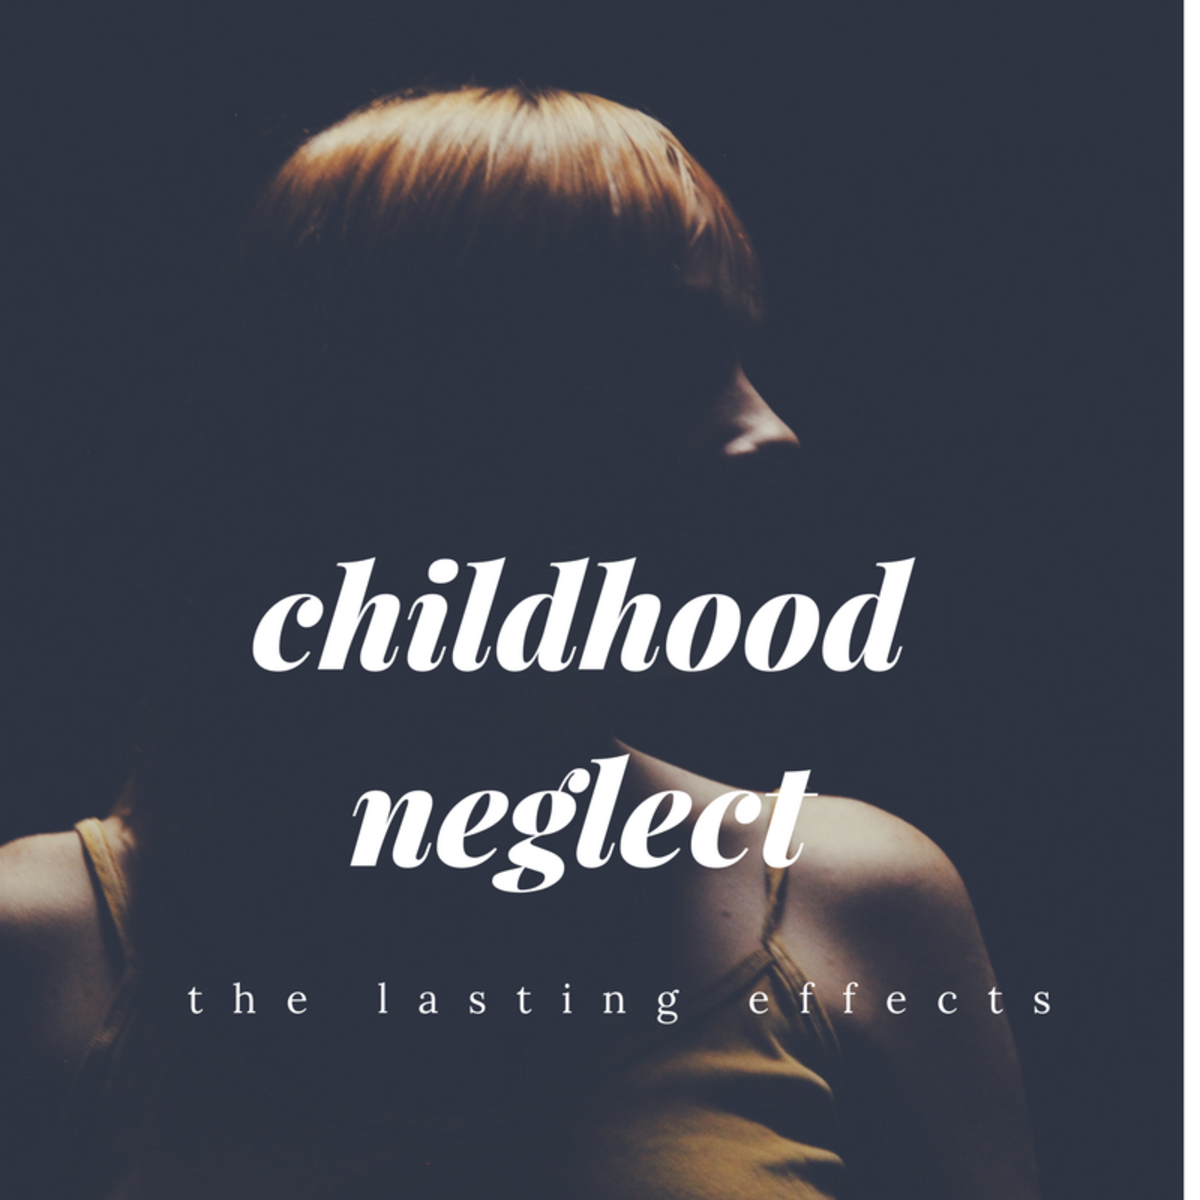 The Long-Term Effects of Childhood Emotional Neglect